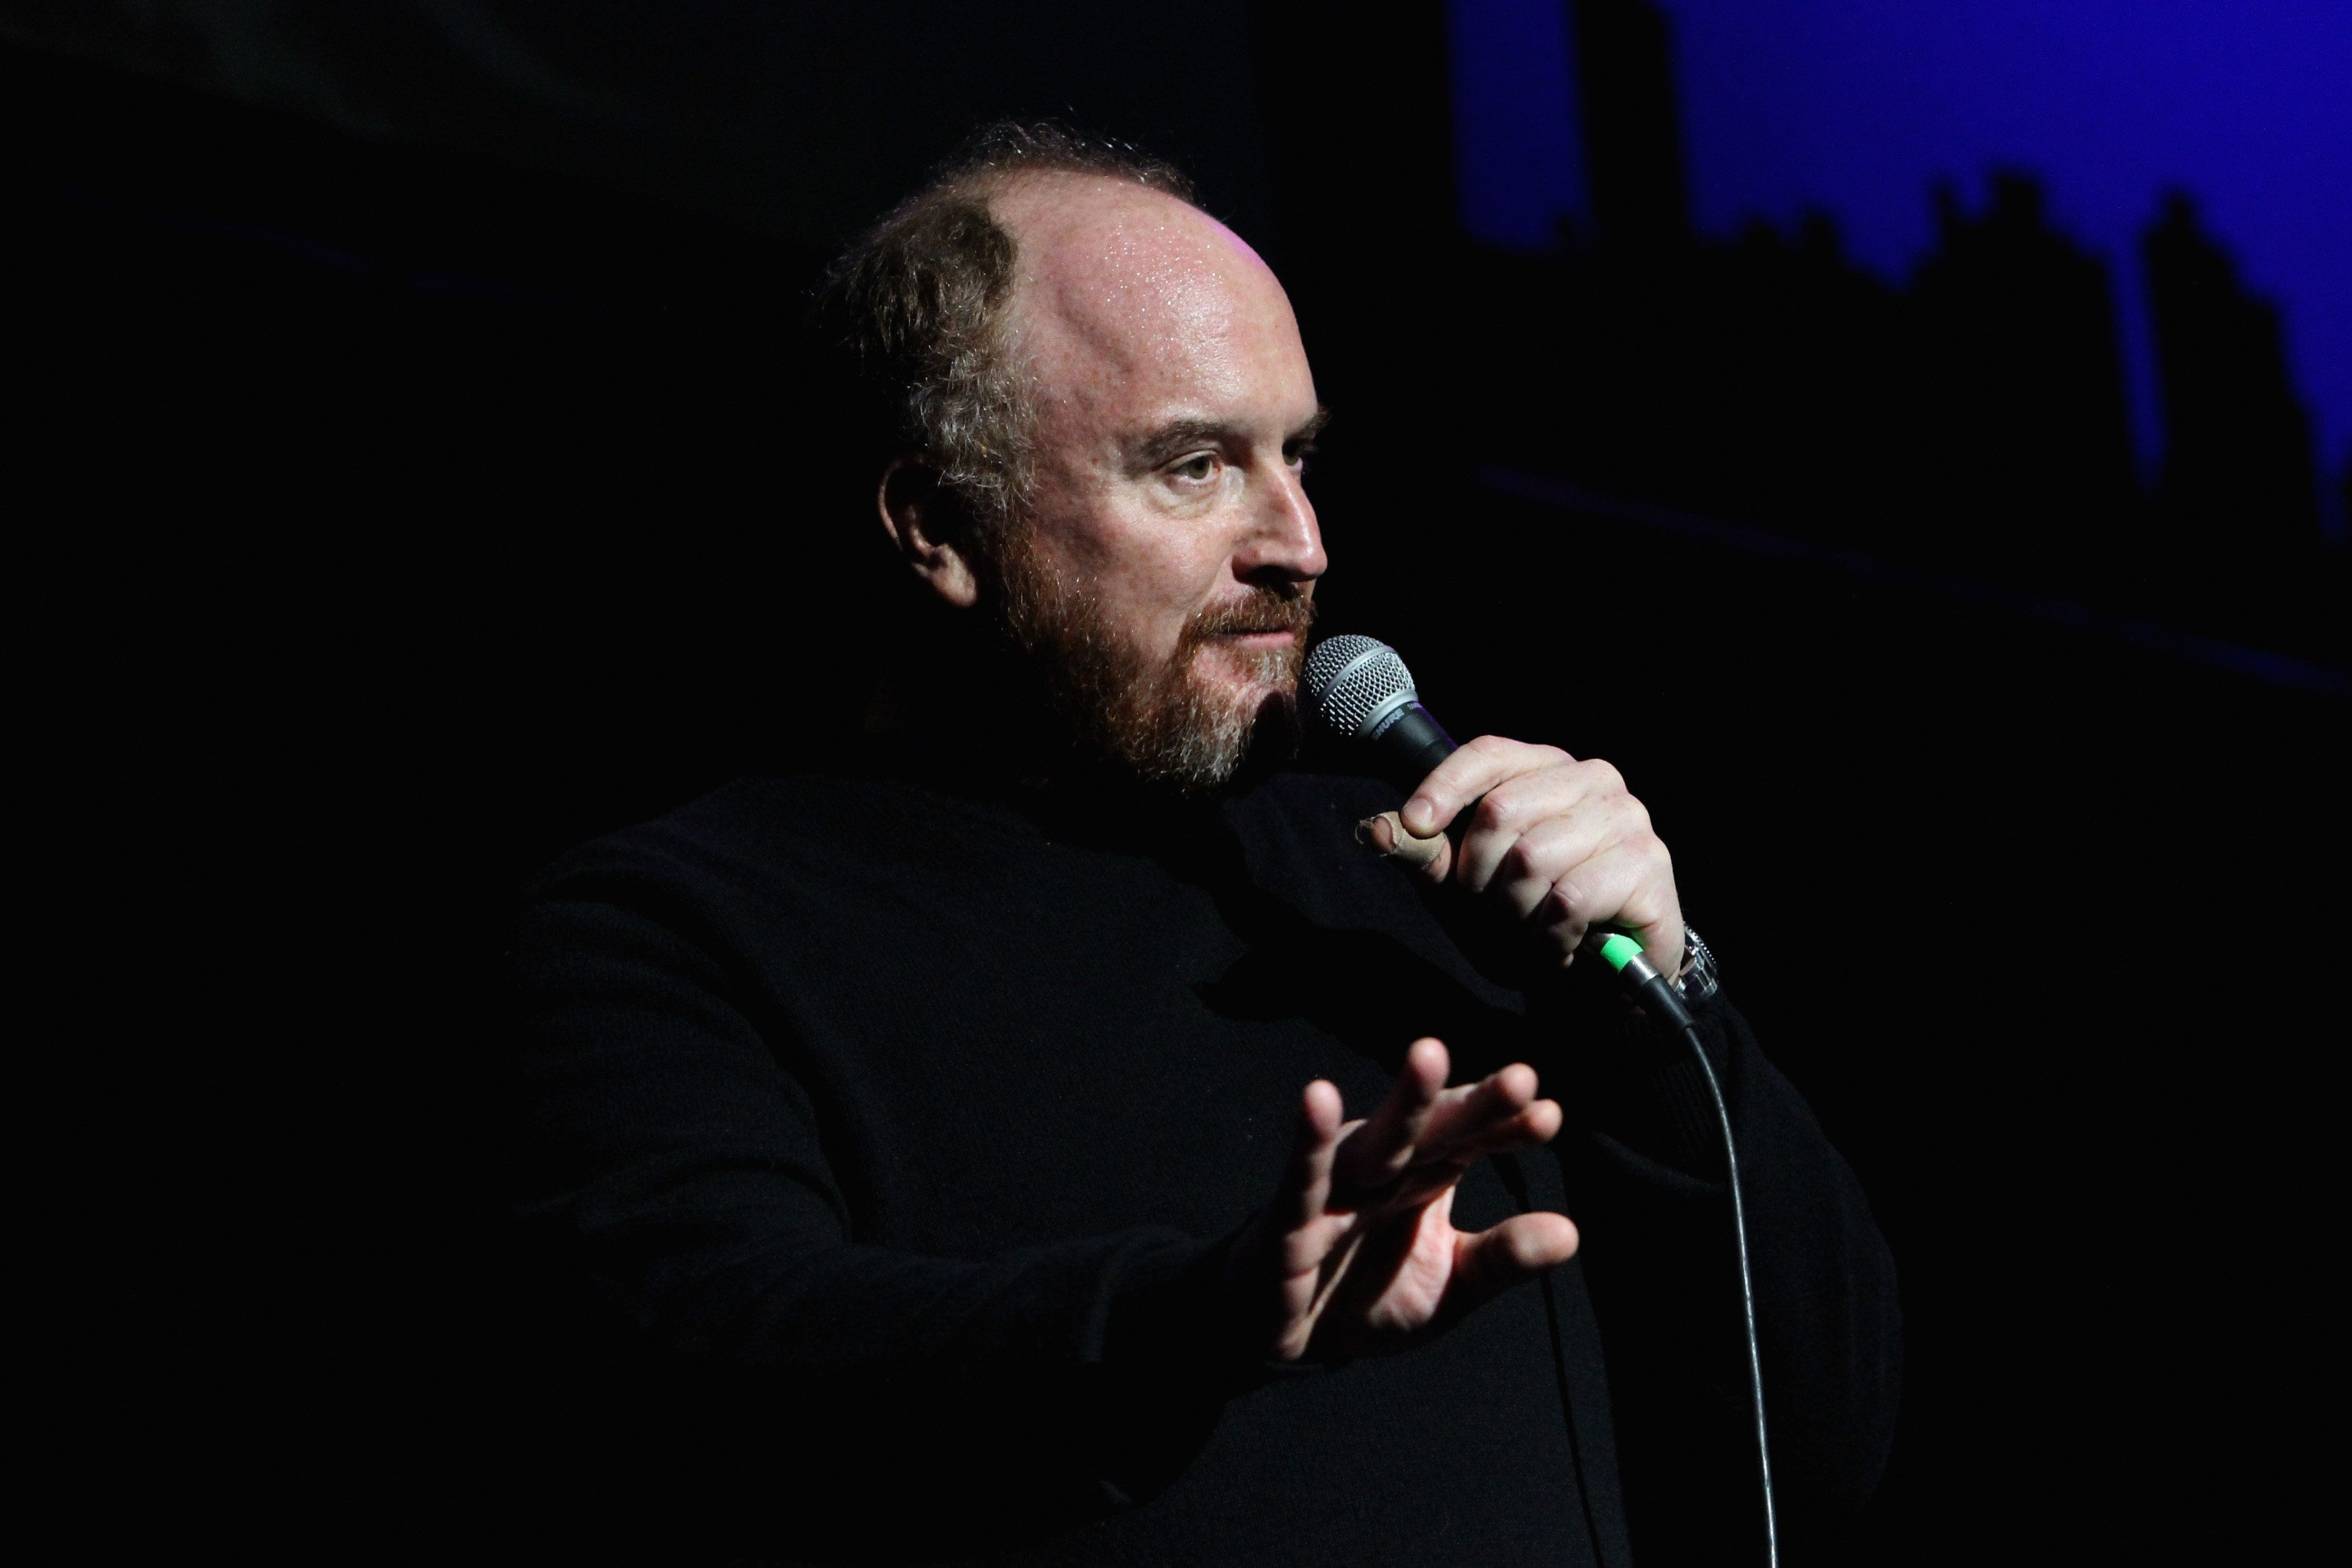 NEW YORK, NY - NOVEMBER 05:  Comedian Louis C.K. performs onstage at The New York Comedy Festival and The Bob Woodruff Foundation present the 8th Annual Stand Up For Heroes Event at The Theater at Madison Square Garden on November 5, 2014 in New York City.  (Photo by Monica Schipper/Getty Images for New York Comedy Festival)